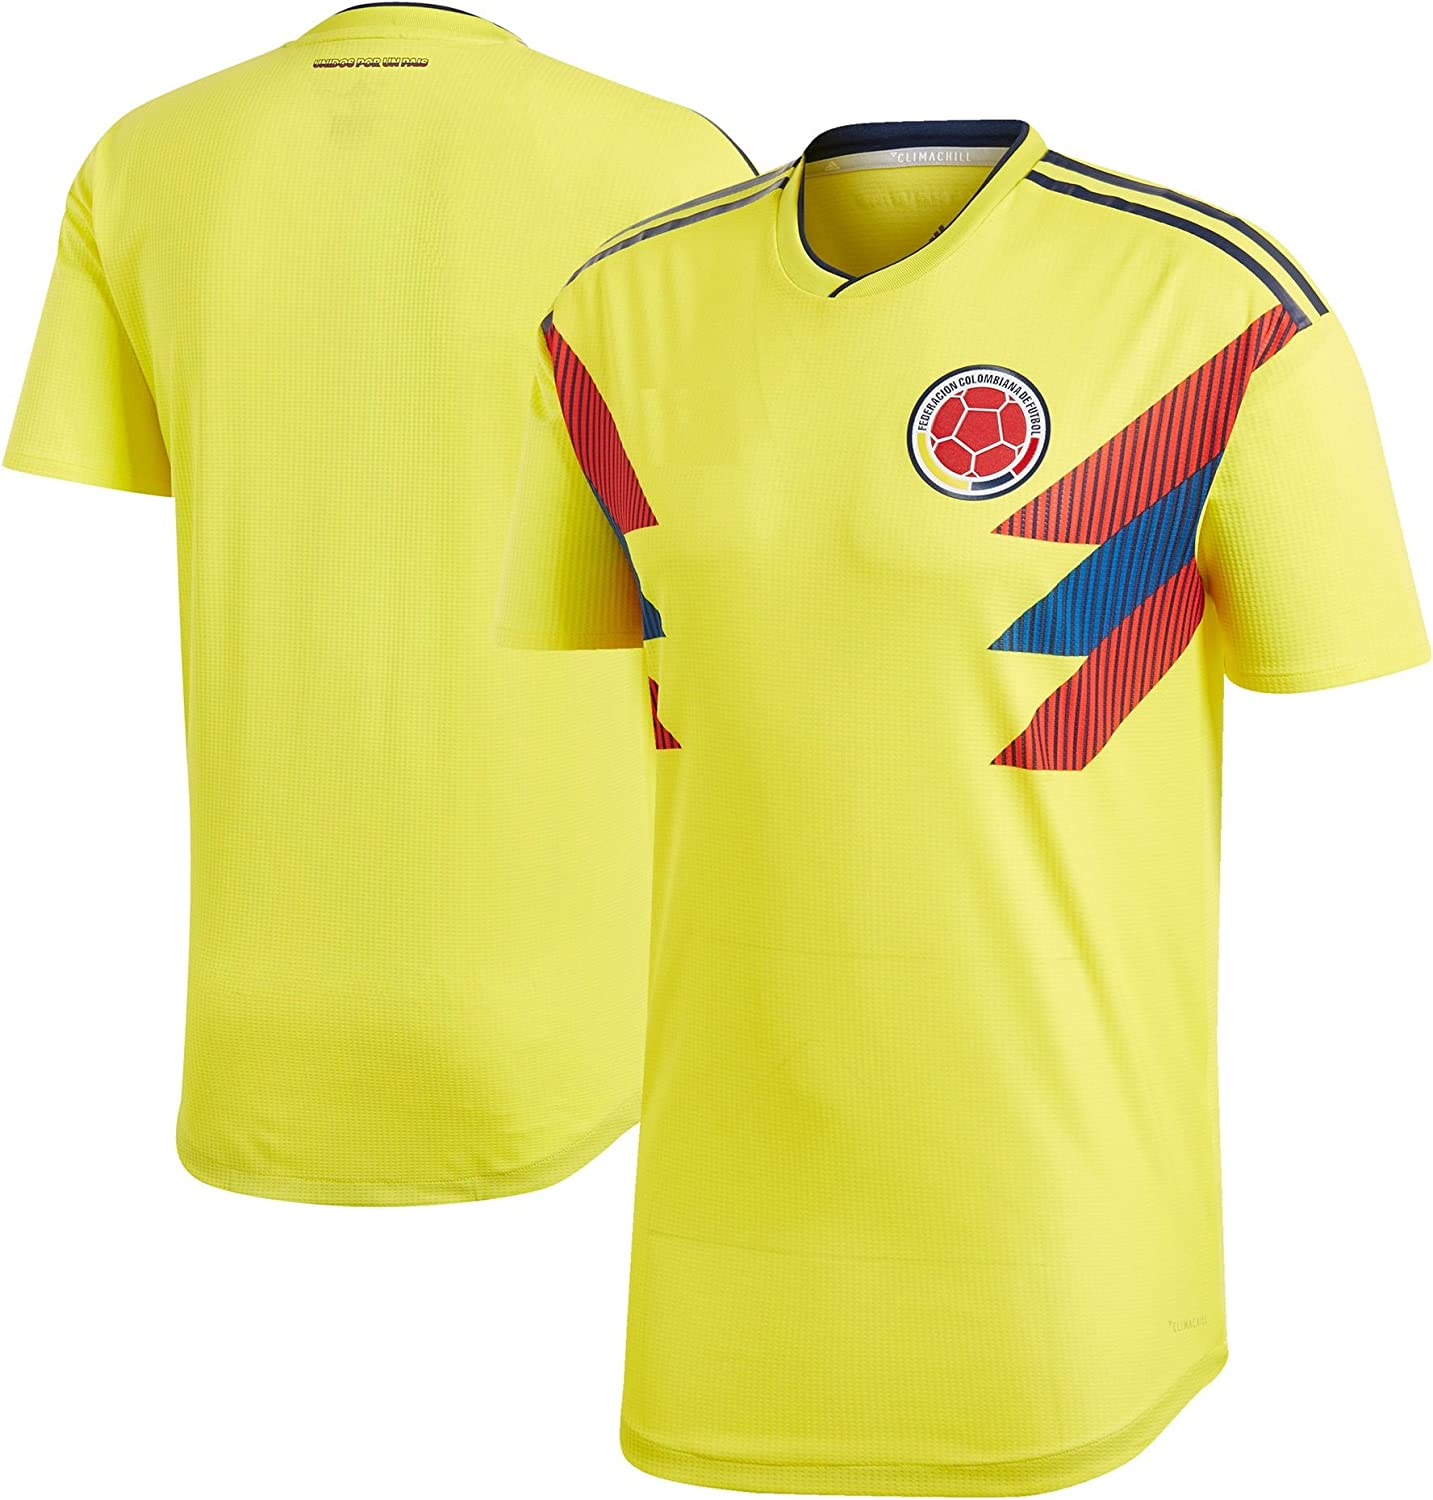 Kitbag Colombia Home Men's Soccer Short Sleeve Jersey T-Shirt World Cup Adult Sizes ? Best Gift for Soccer Fans